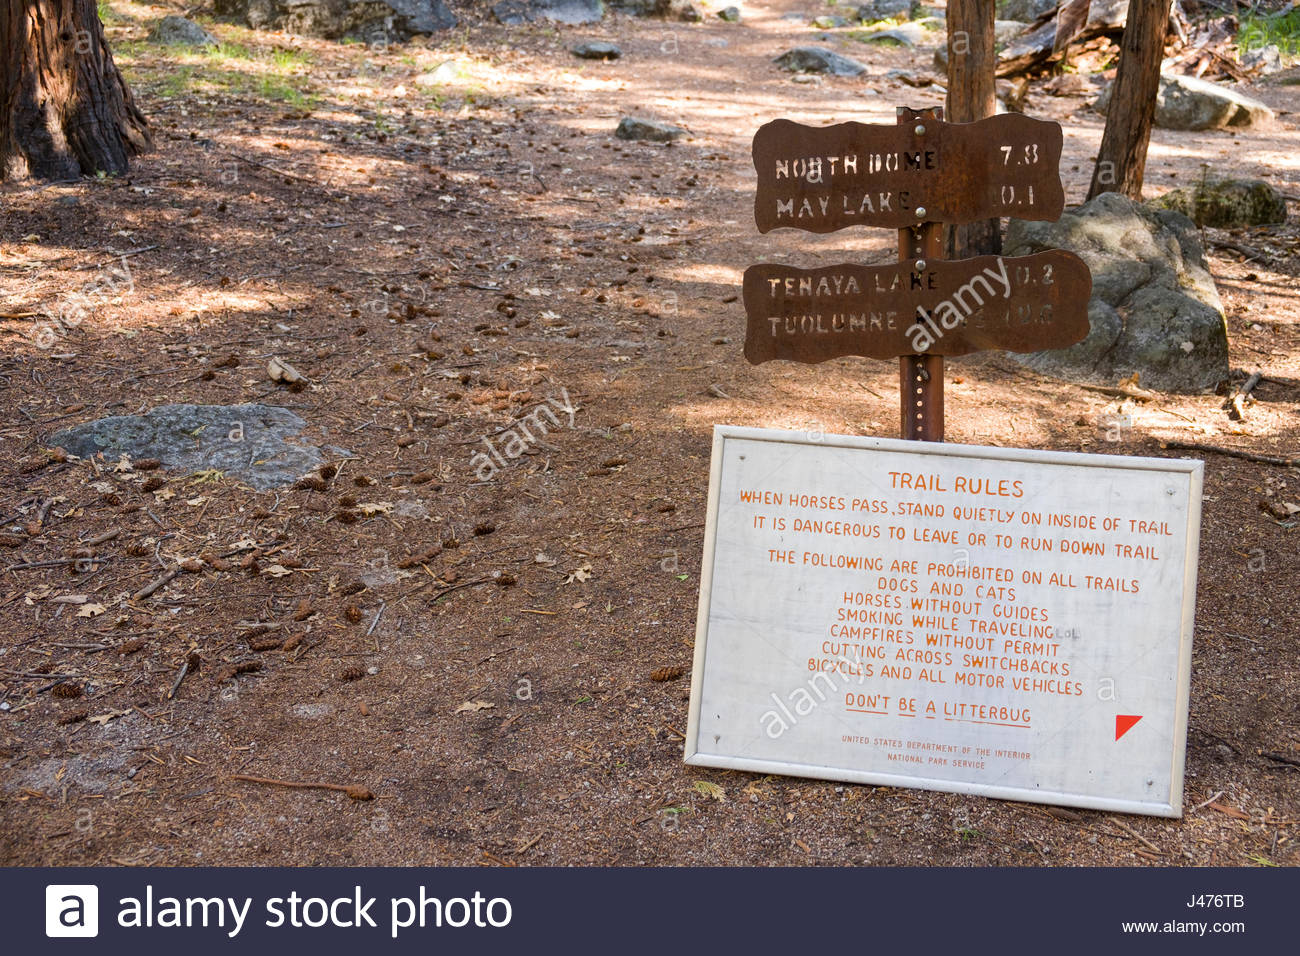 Trail Rules Stock Photos & Trail Rules Stock Images - Alamy